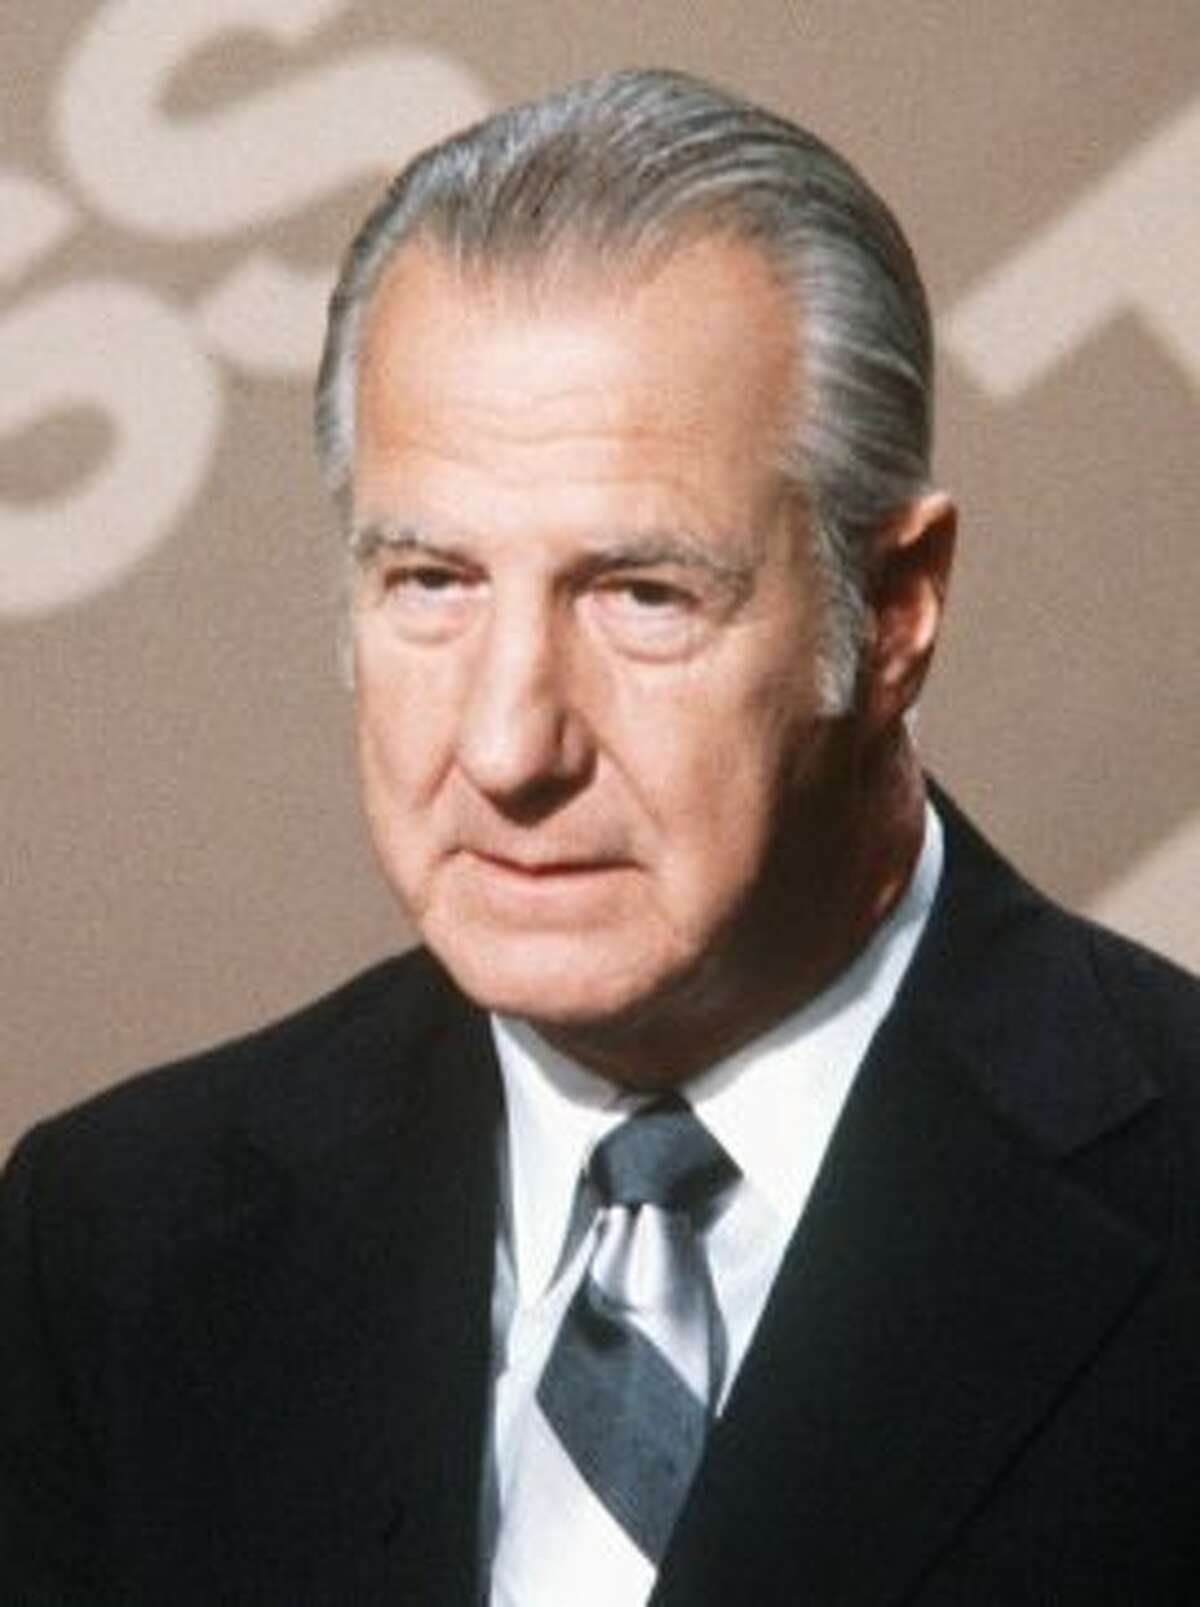 Spiro Agnew In 1973, Nixon's vice president, Spiro Agnew, had to resign under a cloud of corruption. He was one of only two vice presidents to resign.